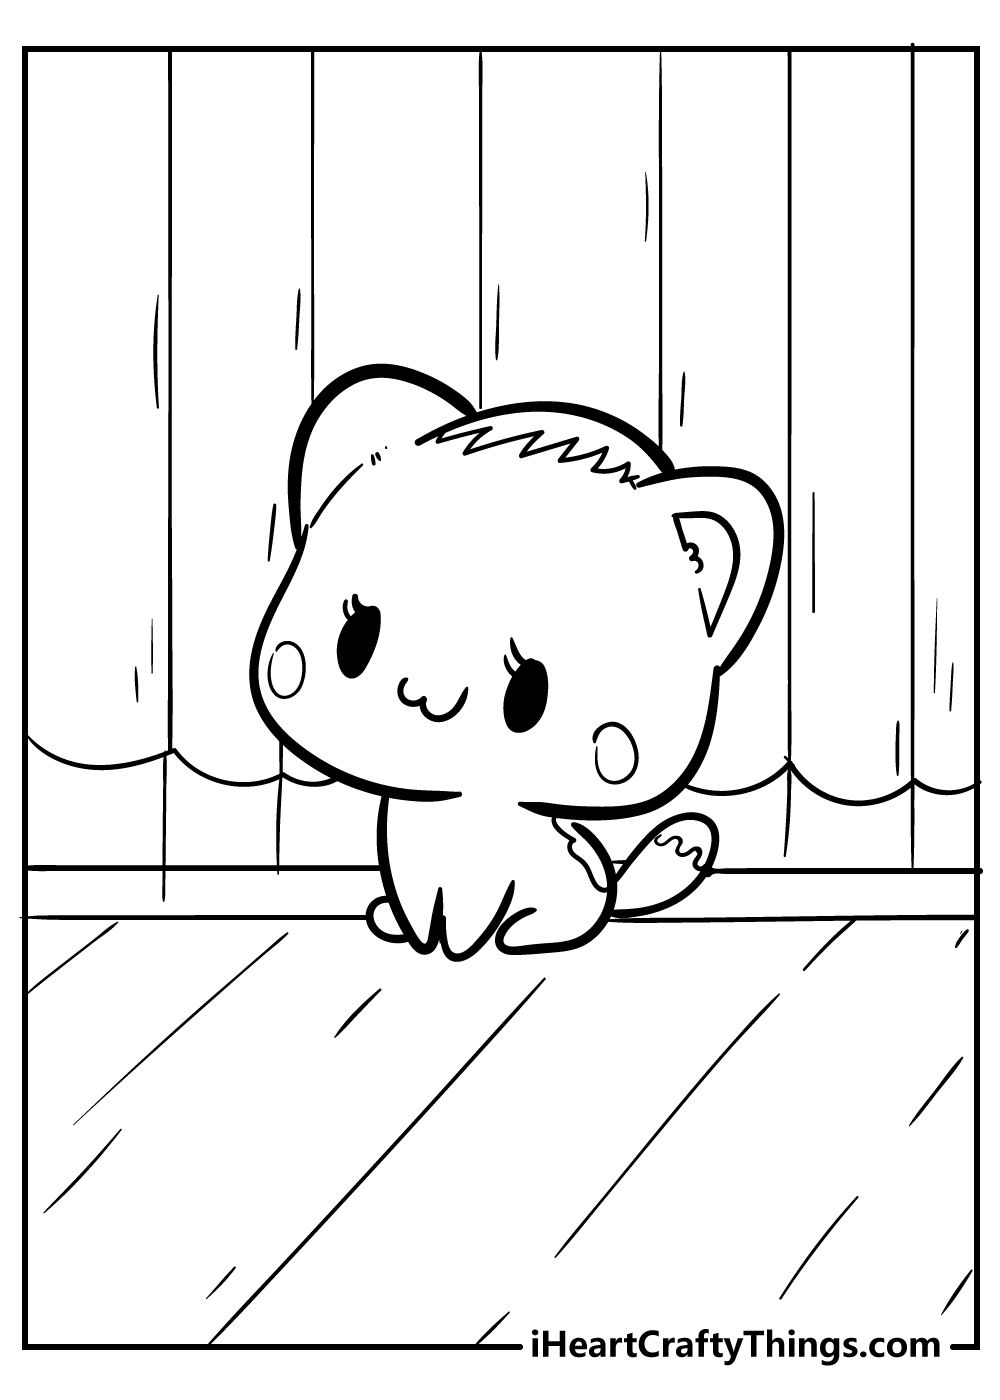 cool kawaii kitten coloring pages for kids